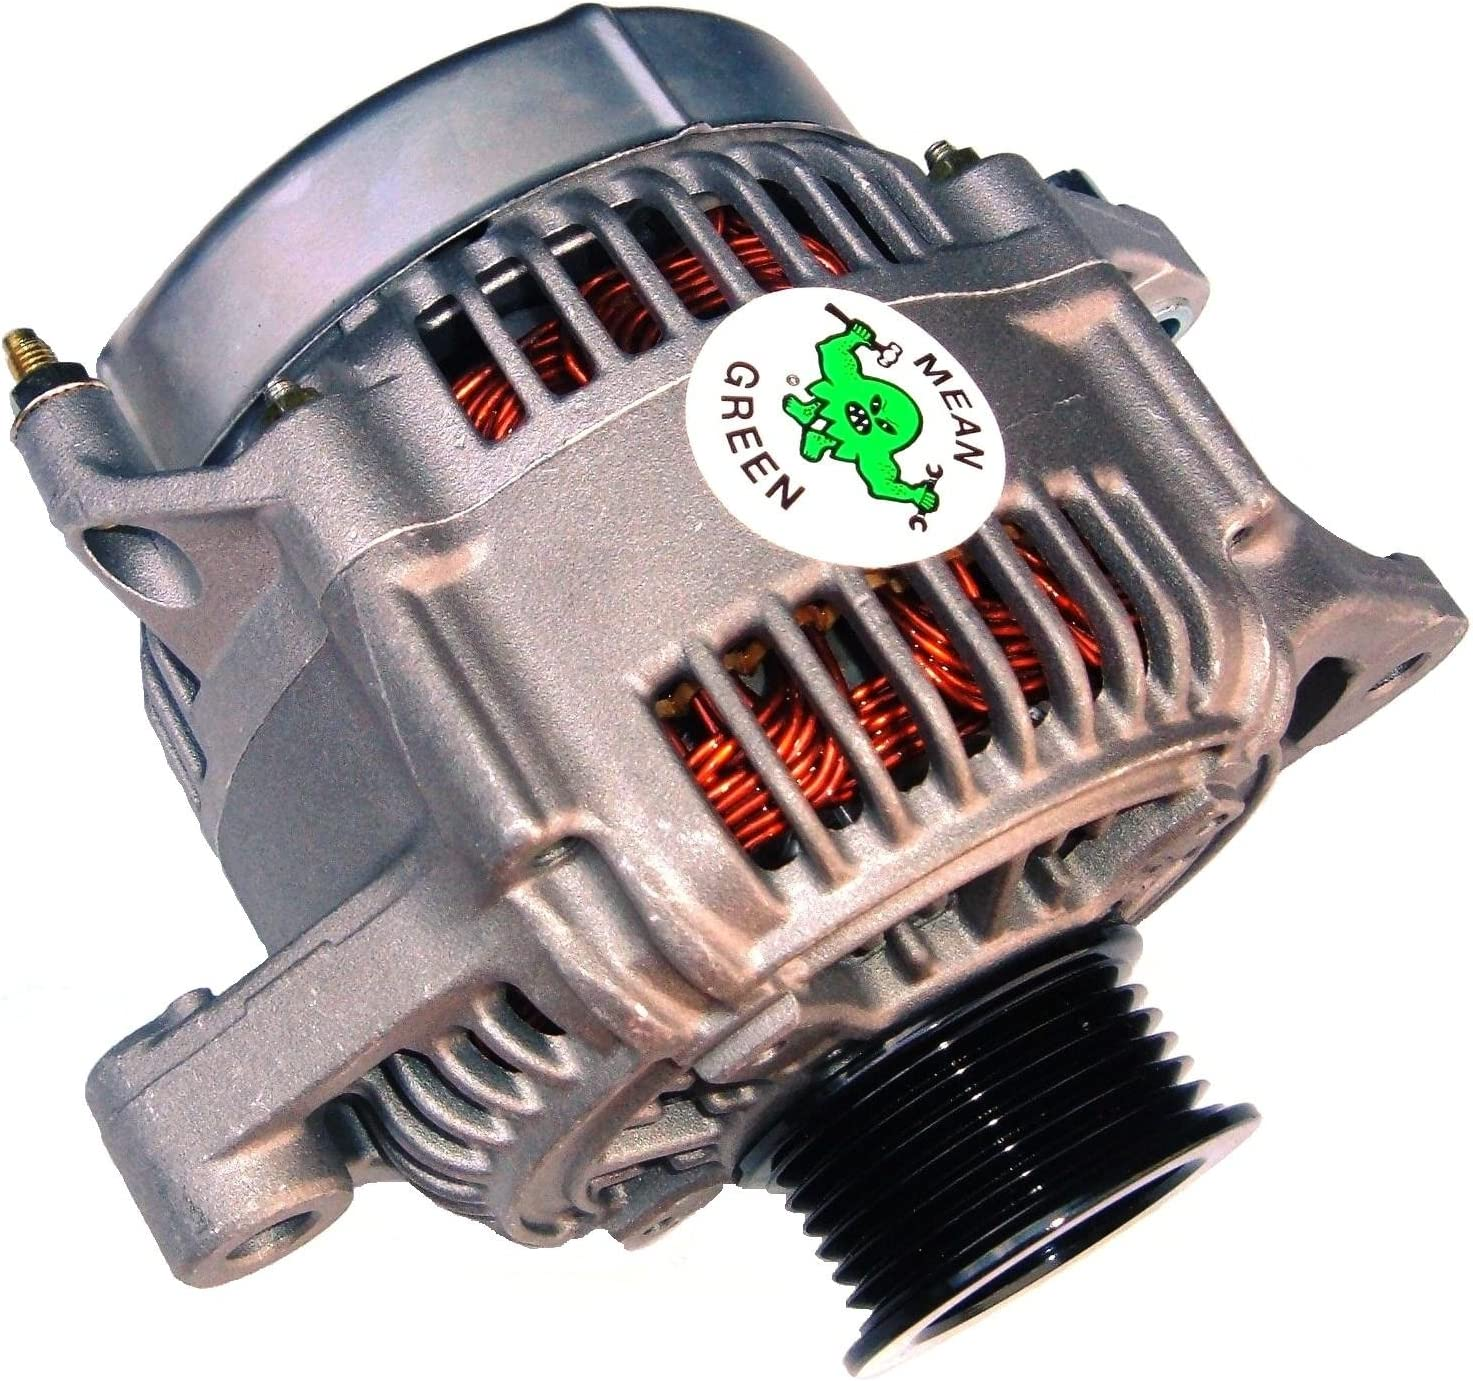 100/% NEW HIGH OUTPUT ALTERNATOR JEEP WRANGLER TJ CHEROKEE 160AMP *1 YR WARRANTY*